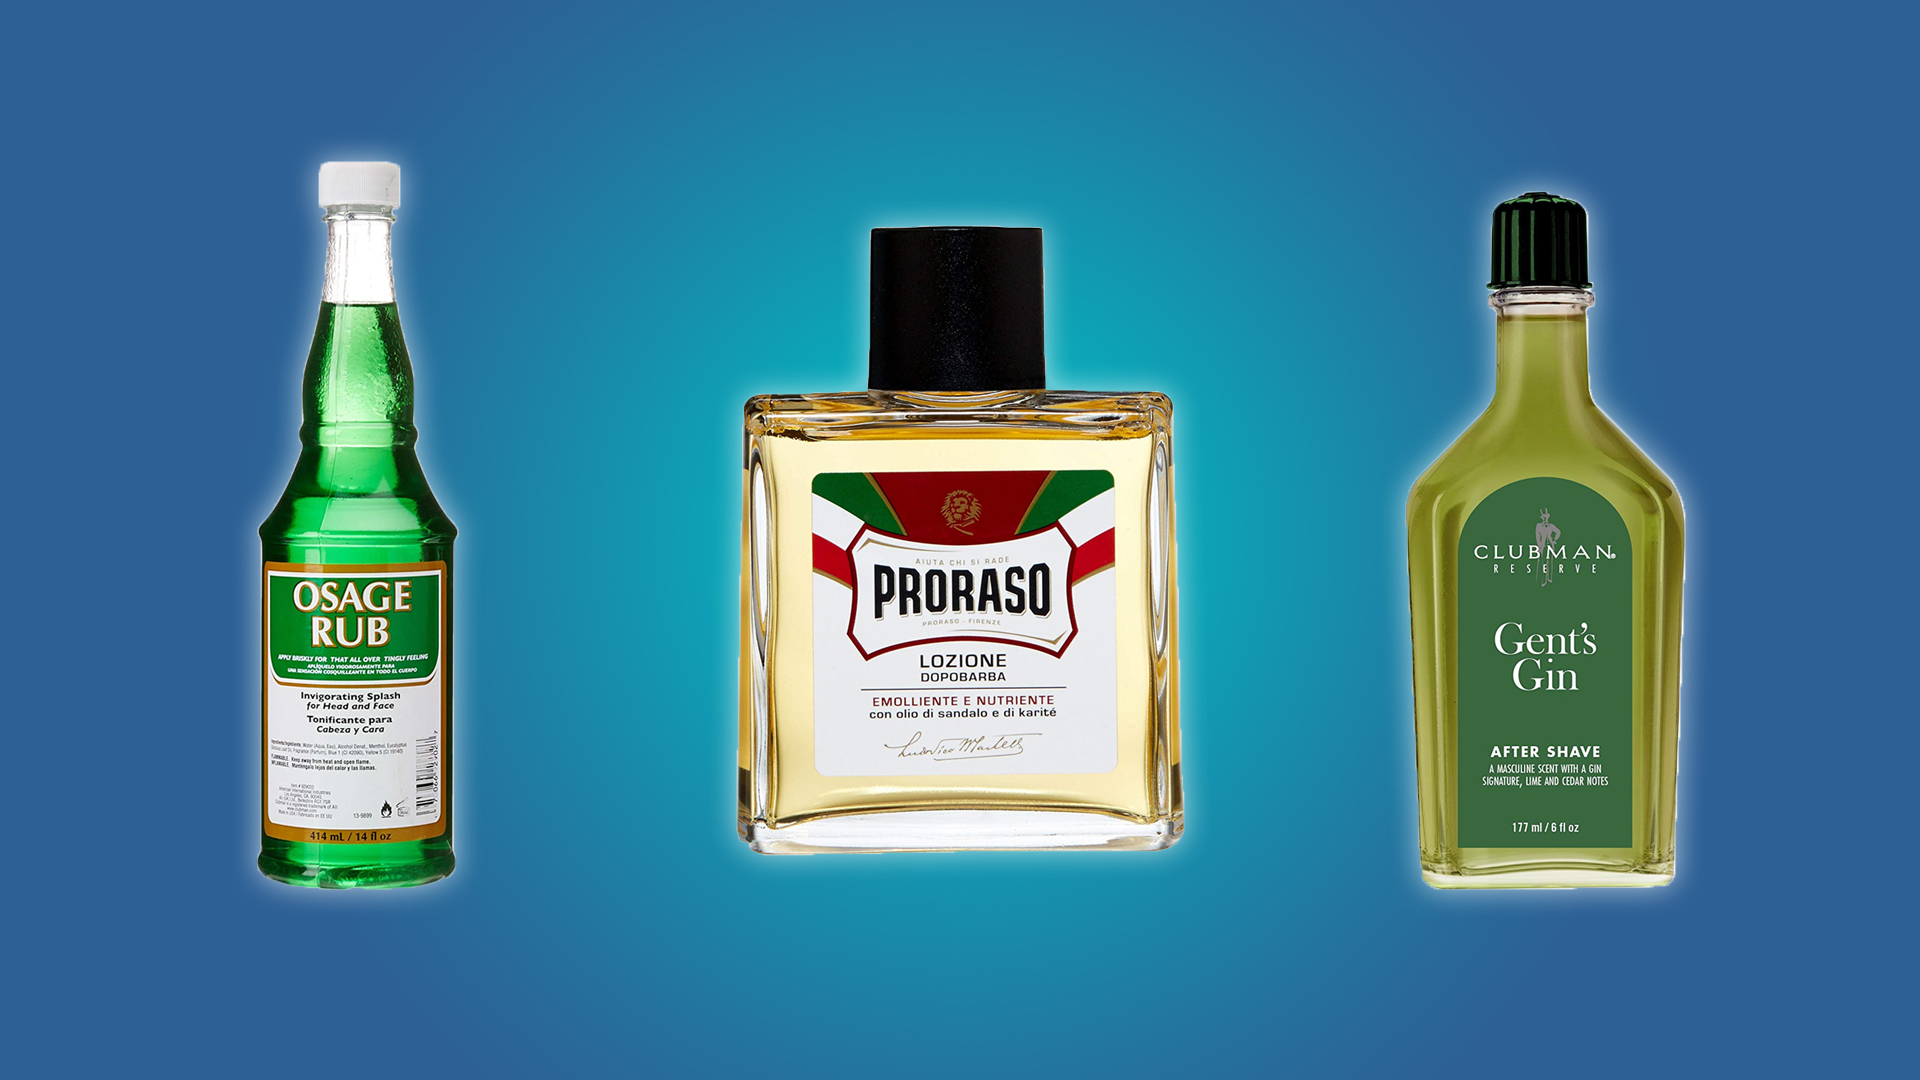 The Gent's Gin, Osage Rub, and Proraso Aftershaves